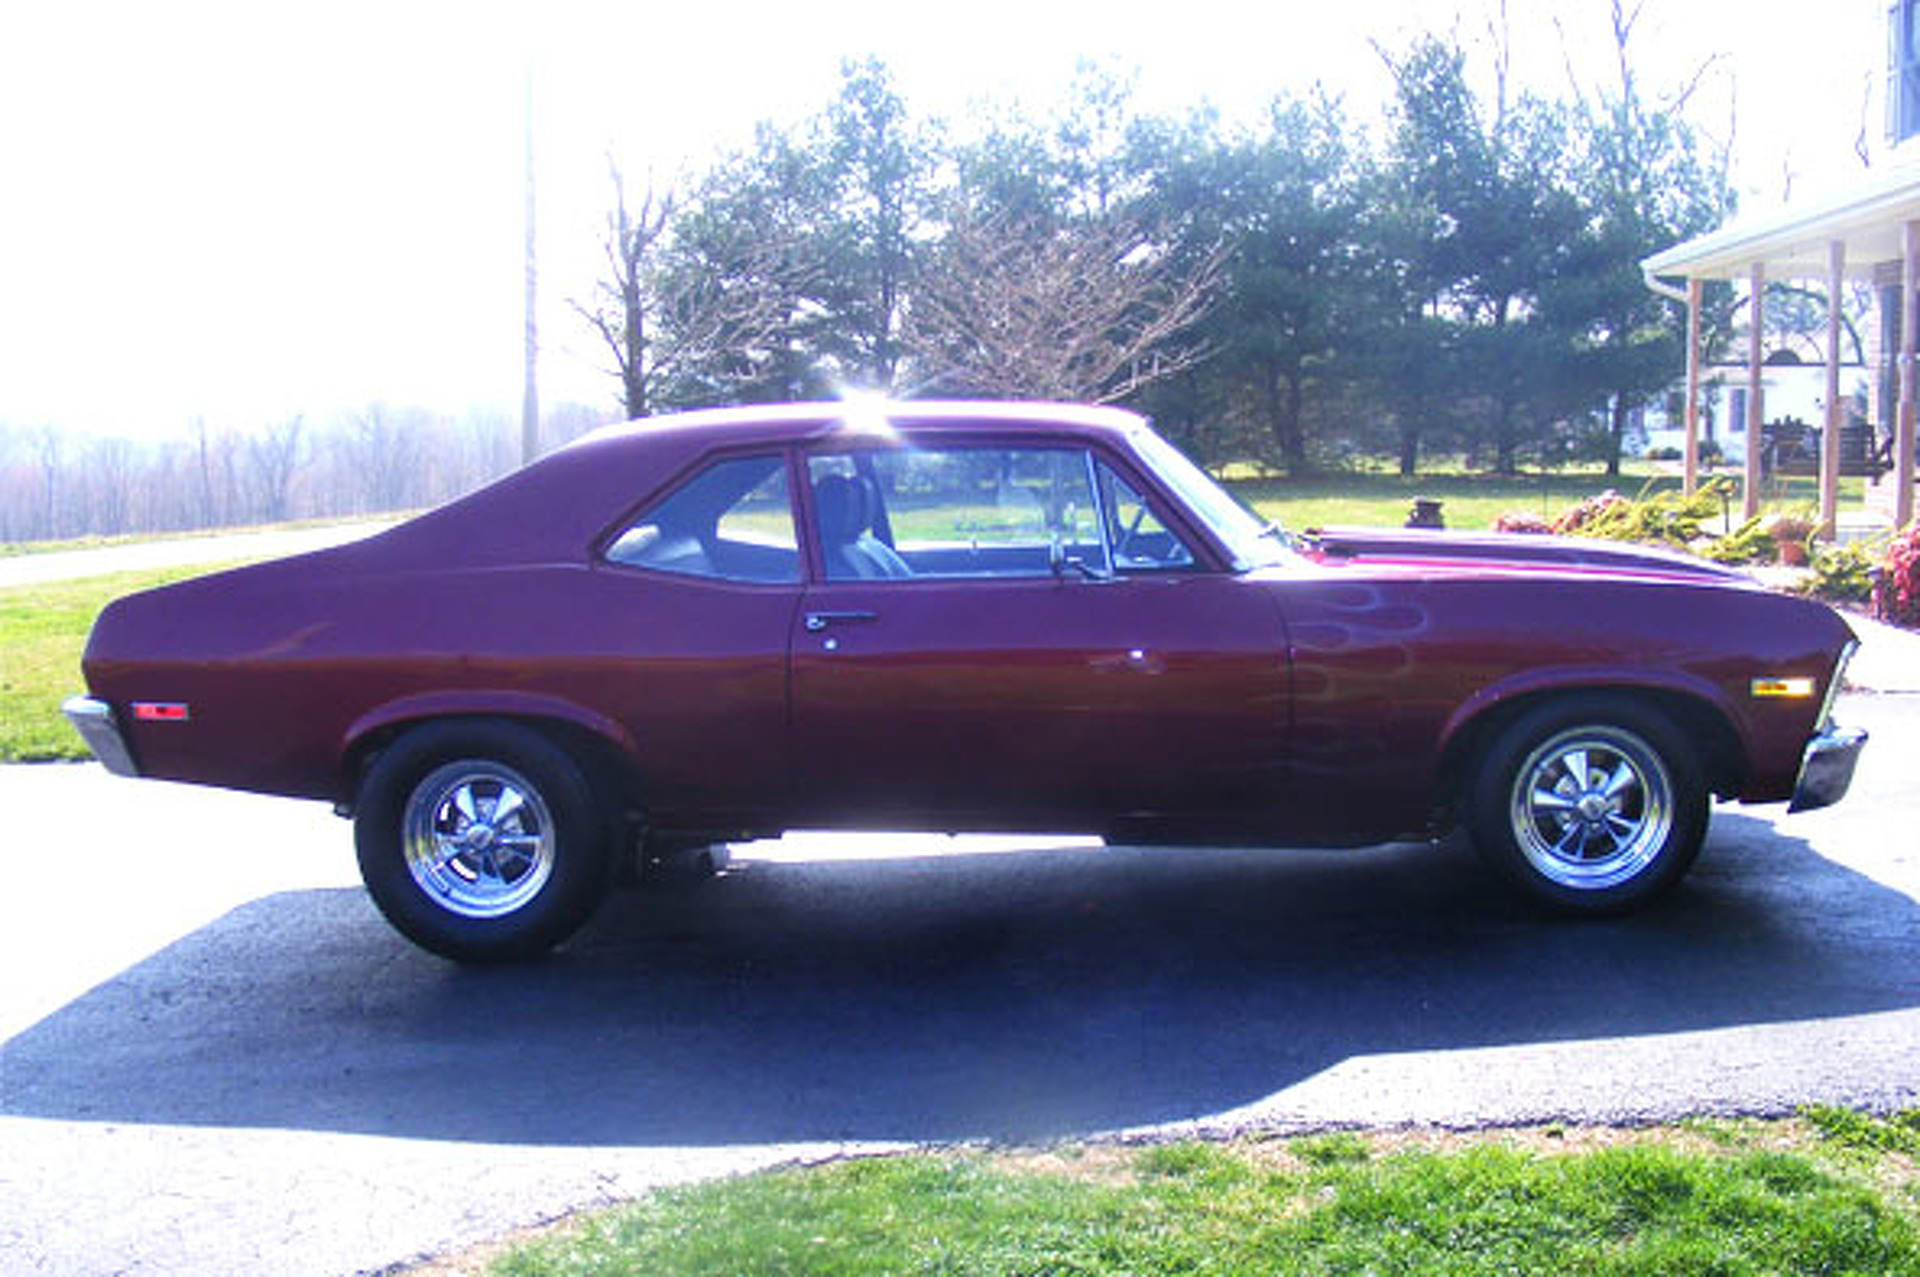 Your Ride: 1970 Chevrolet Nova SS